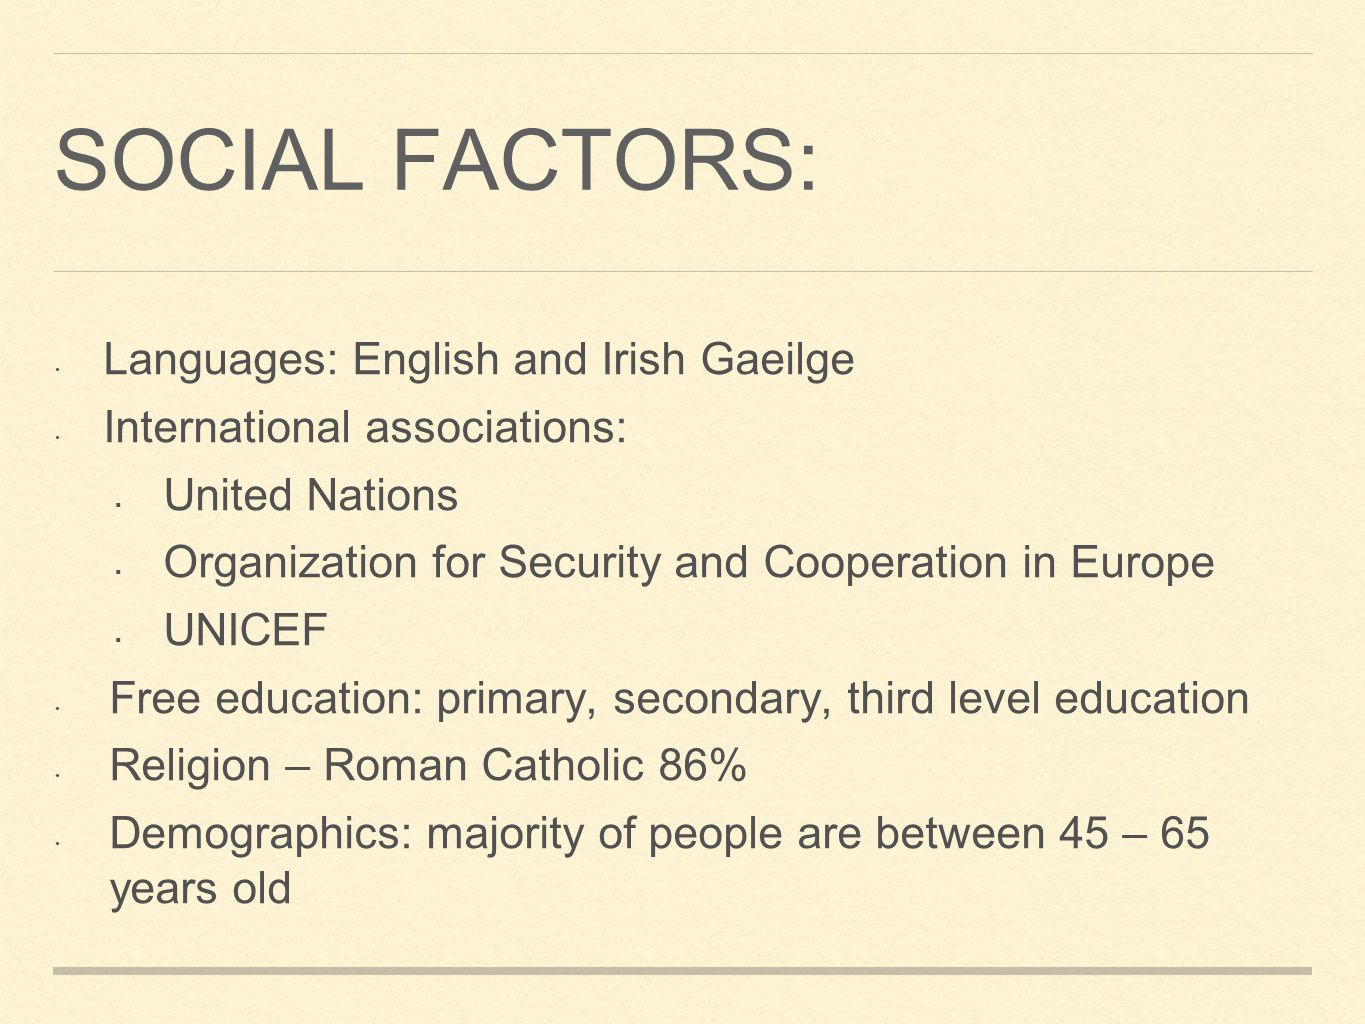 SOCIAL FACTORS: Languages: English and Irish Gaeilge International associations: United Nations Organization for Security and Cooperation in Europe UNICEF Free education: primary, secondary, third level education Religion – Roman Catholic 86% Demographics: majority of people are between 45 – 65 years old